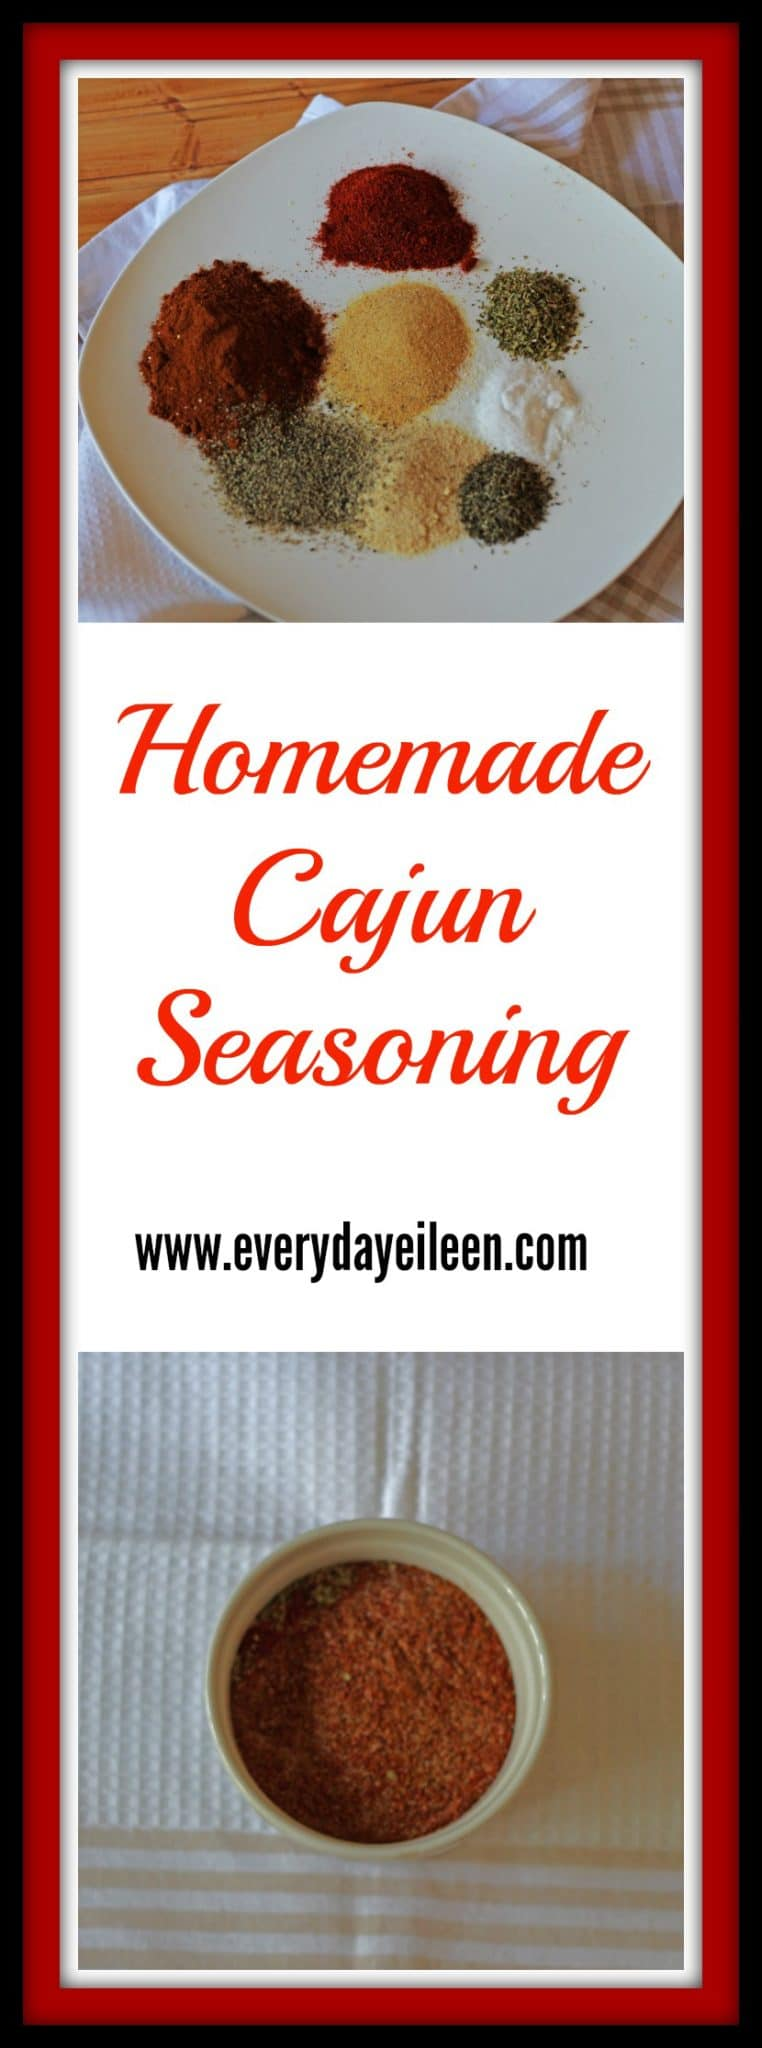 homemade cajun seasonings